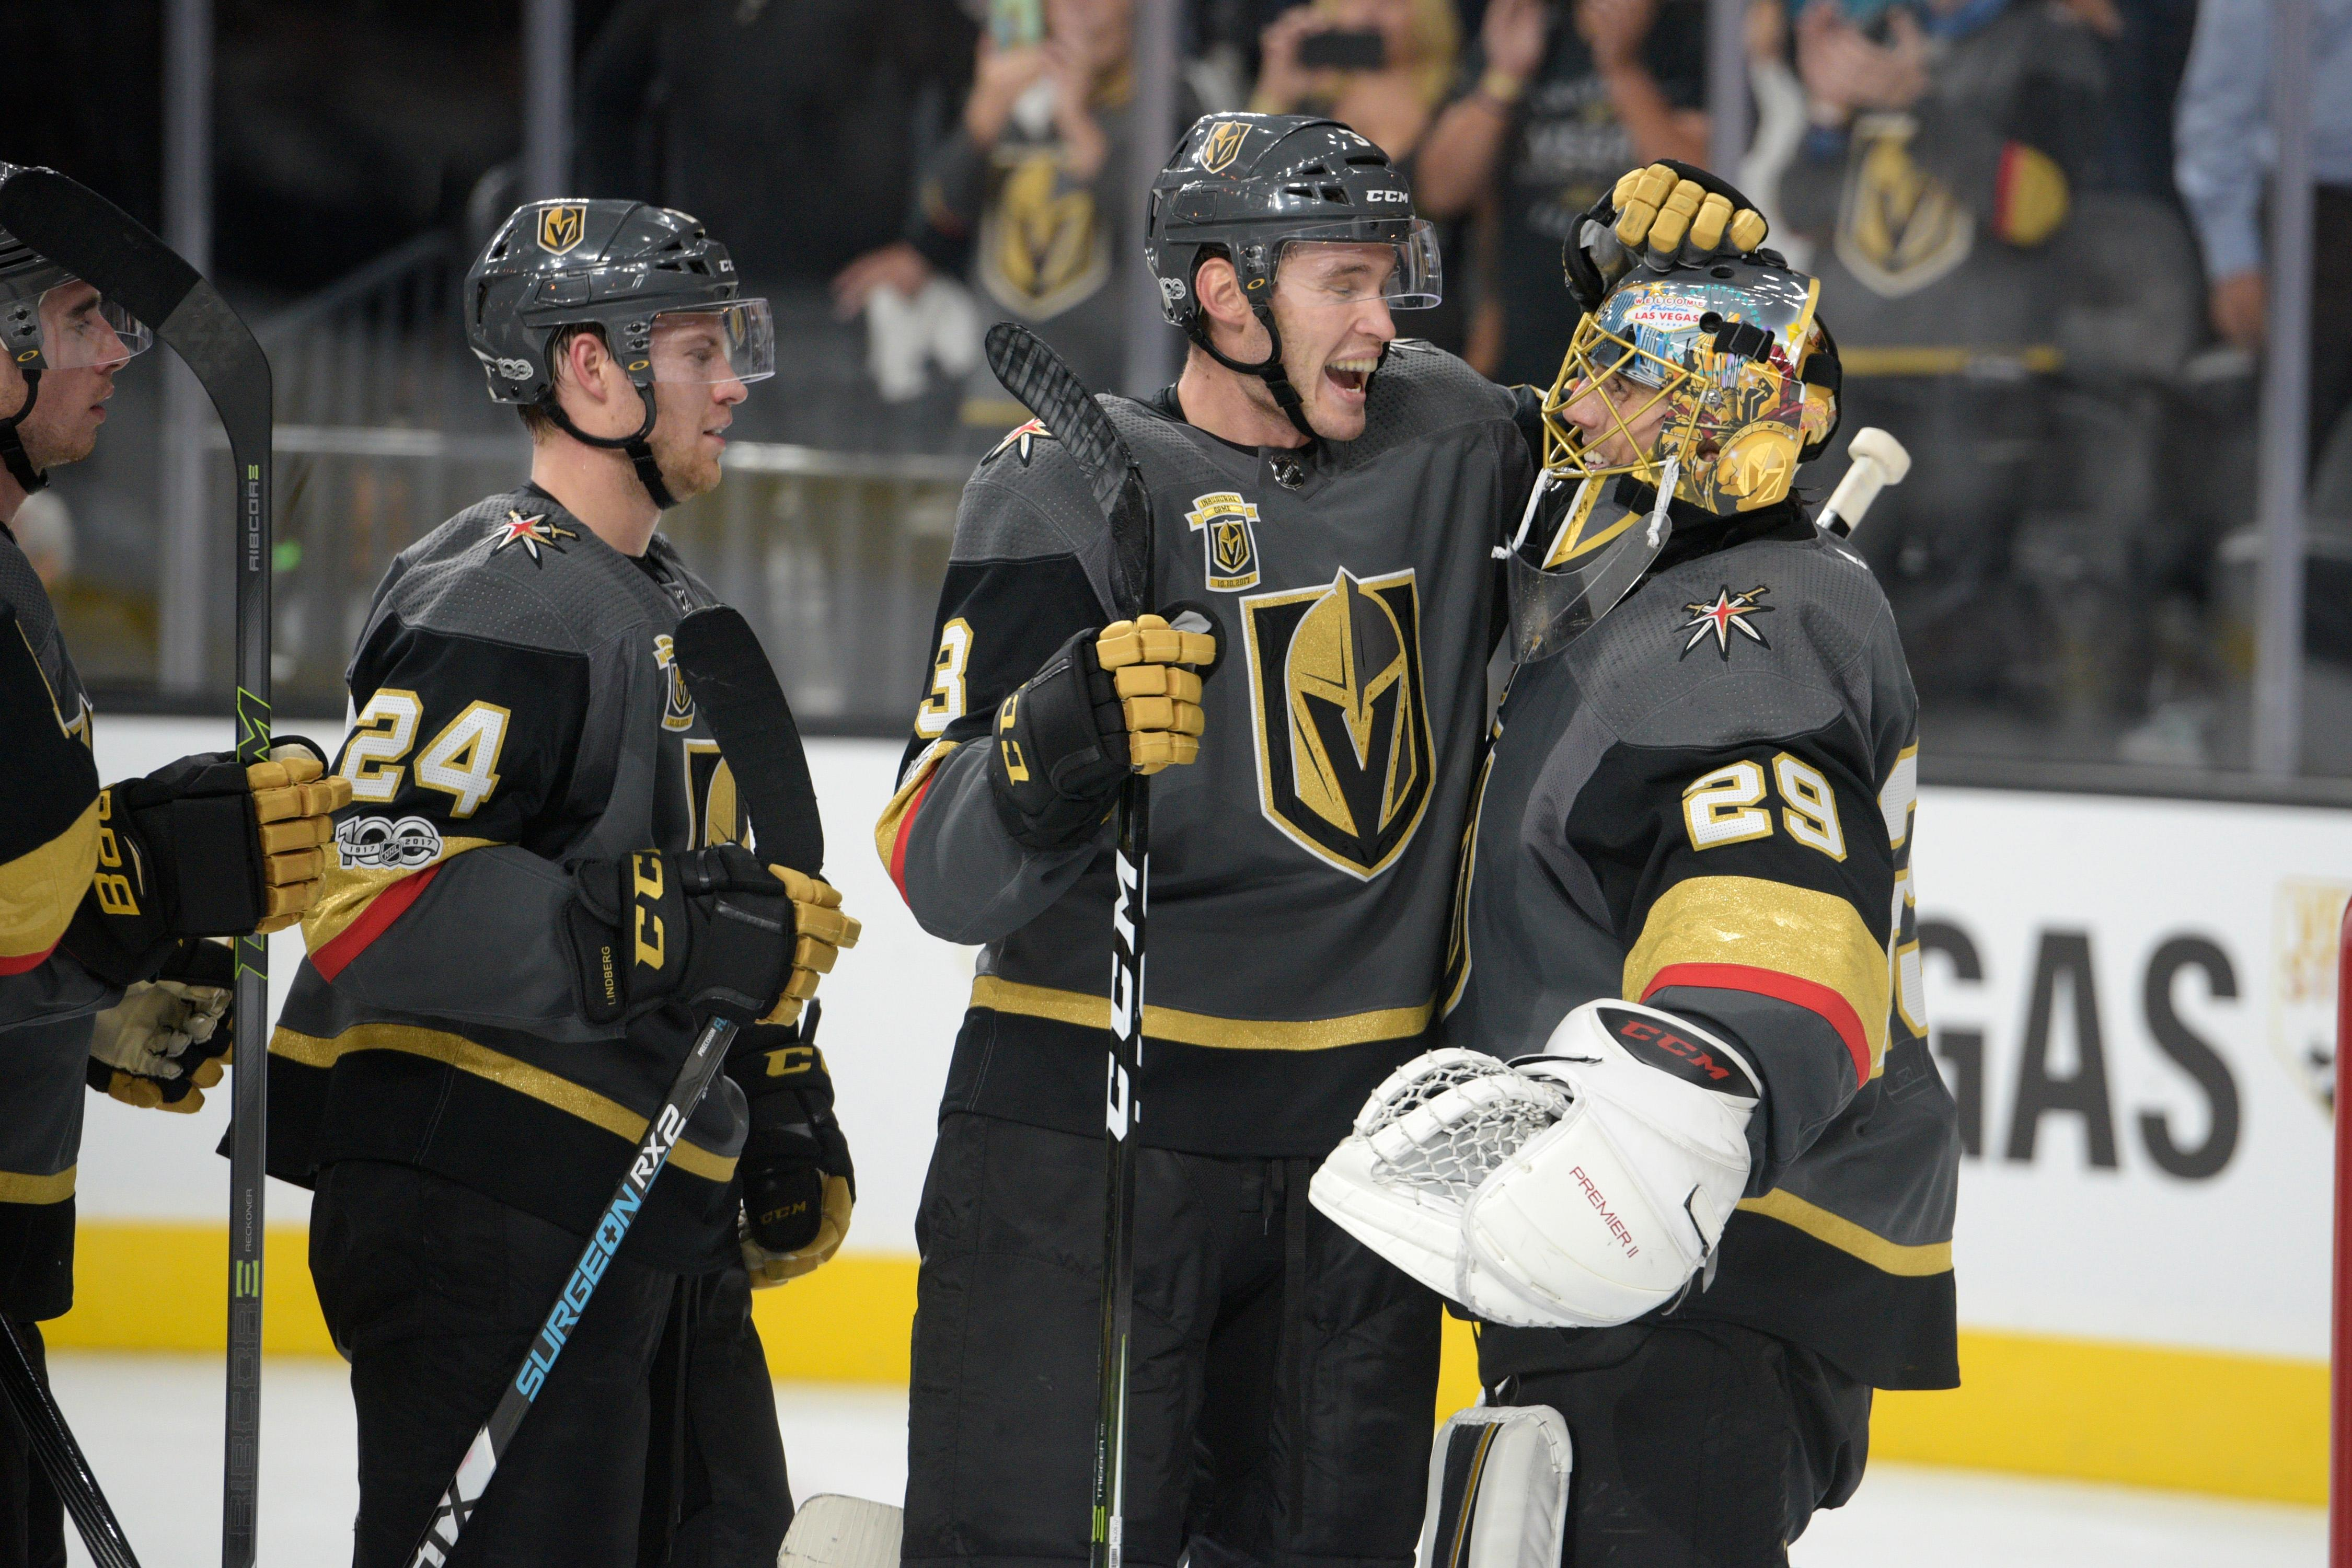 Vegas Golden Knights defenseman Brayden McNabb (3) congratulates Vegas Golden Knights goalie Marc-Andre Fleury (29) after the Knights home opener Tuesday, Oct. 10, 2017, at the T-Mobile Arena. The Knights won 5-2 to extend their winning streak to 3-0. CREDIT: Sam Morris/Las Vegas News Bureau